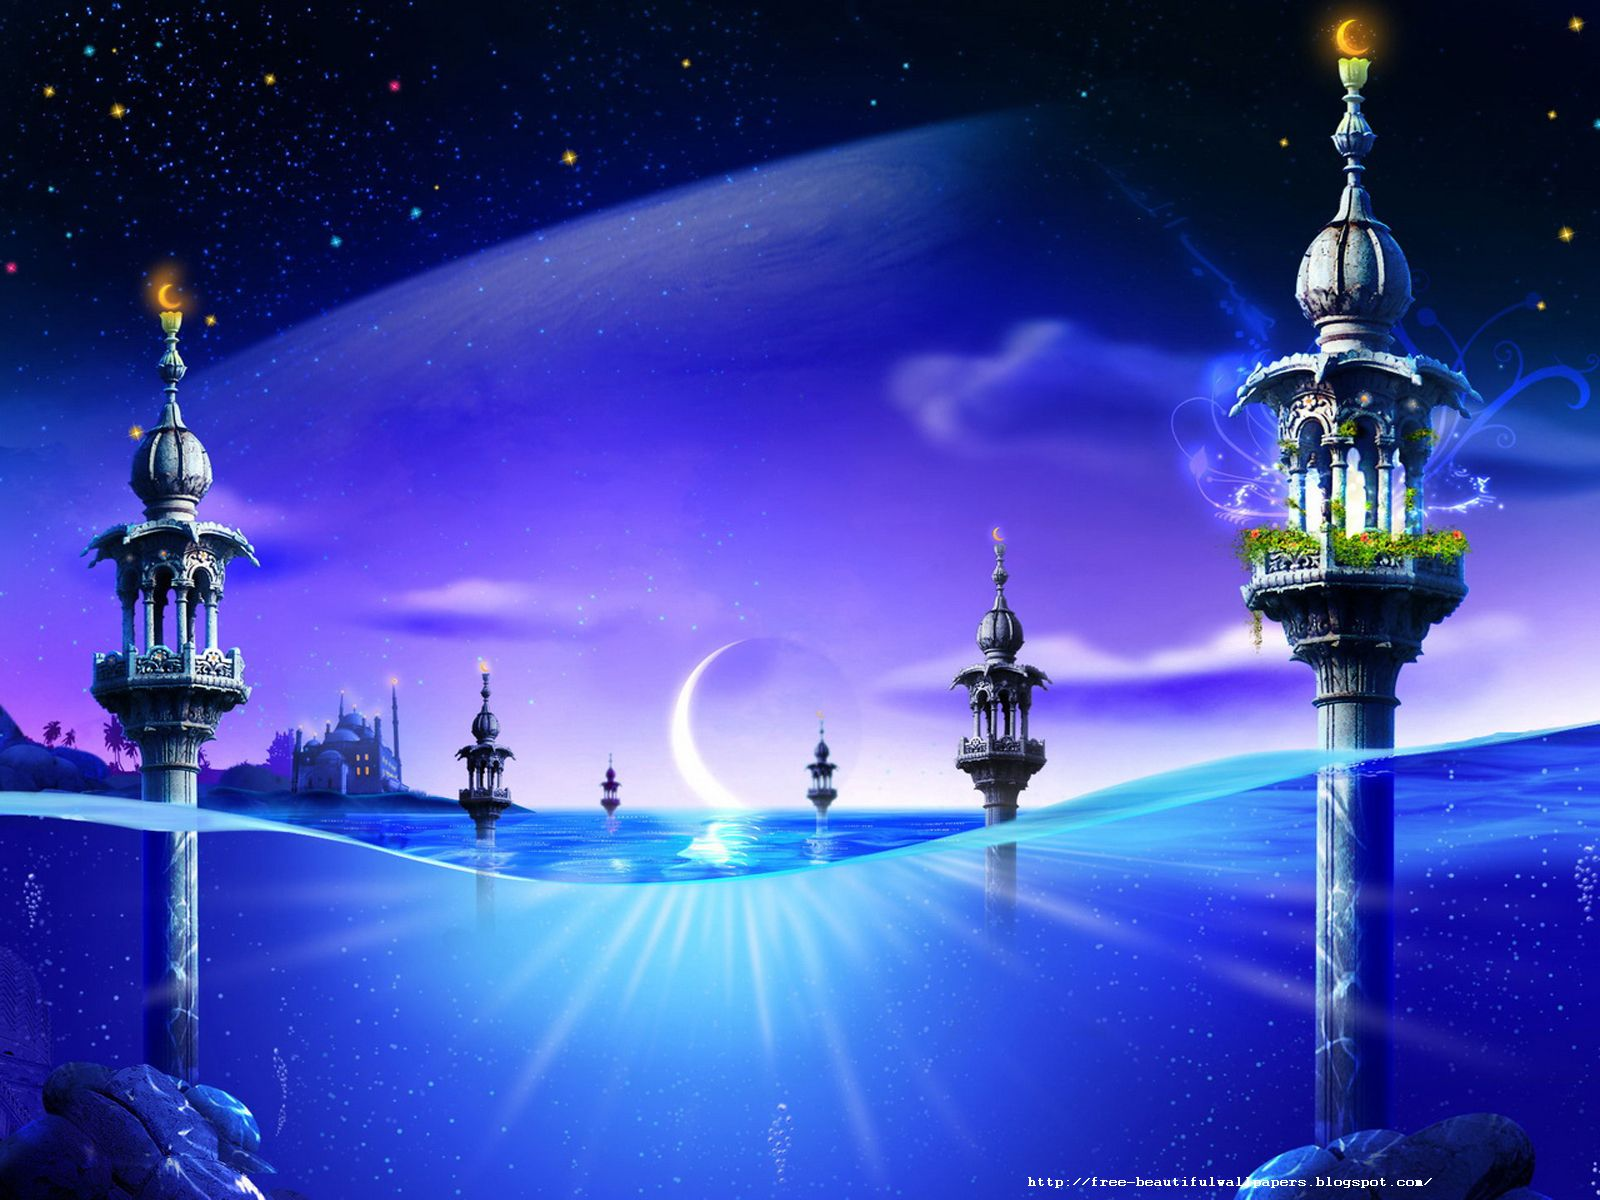 Free beautiful wallpapers download islamic beautiful wallpapers - Islamic background wallpaper ...